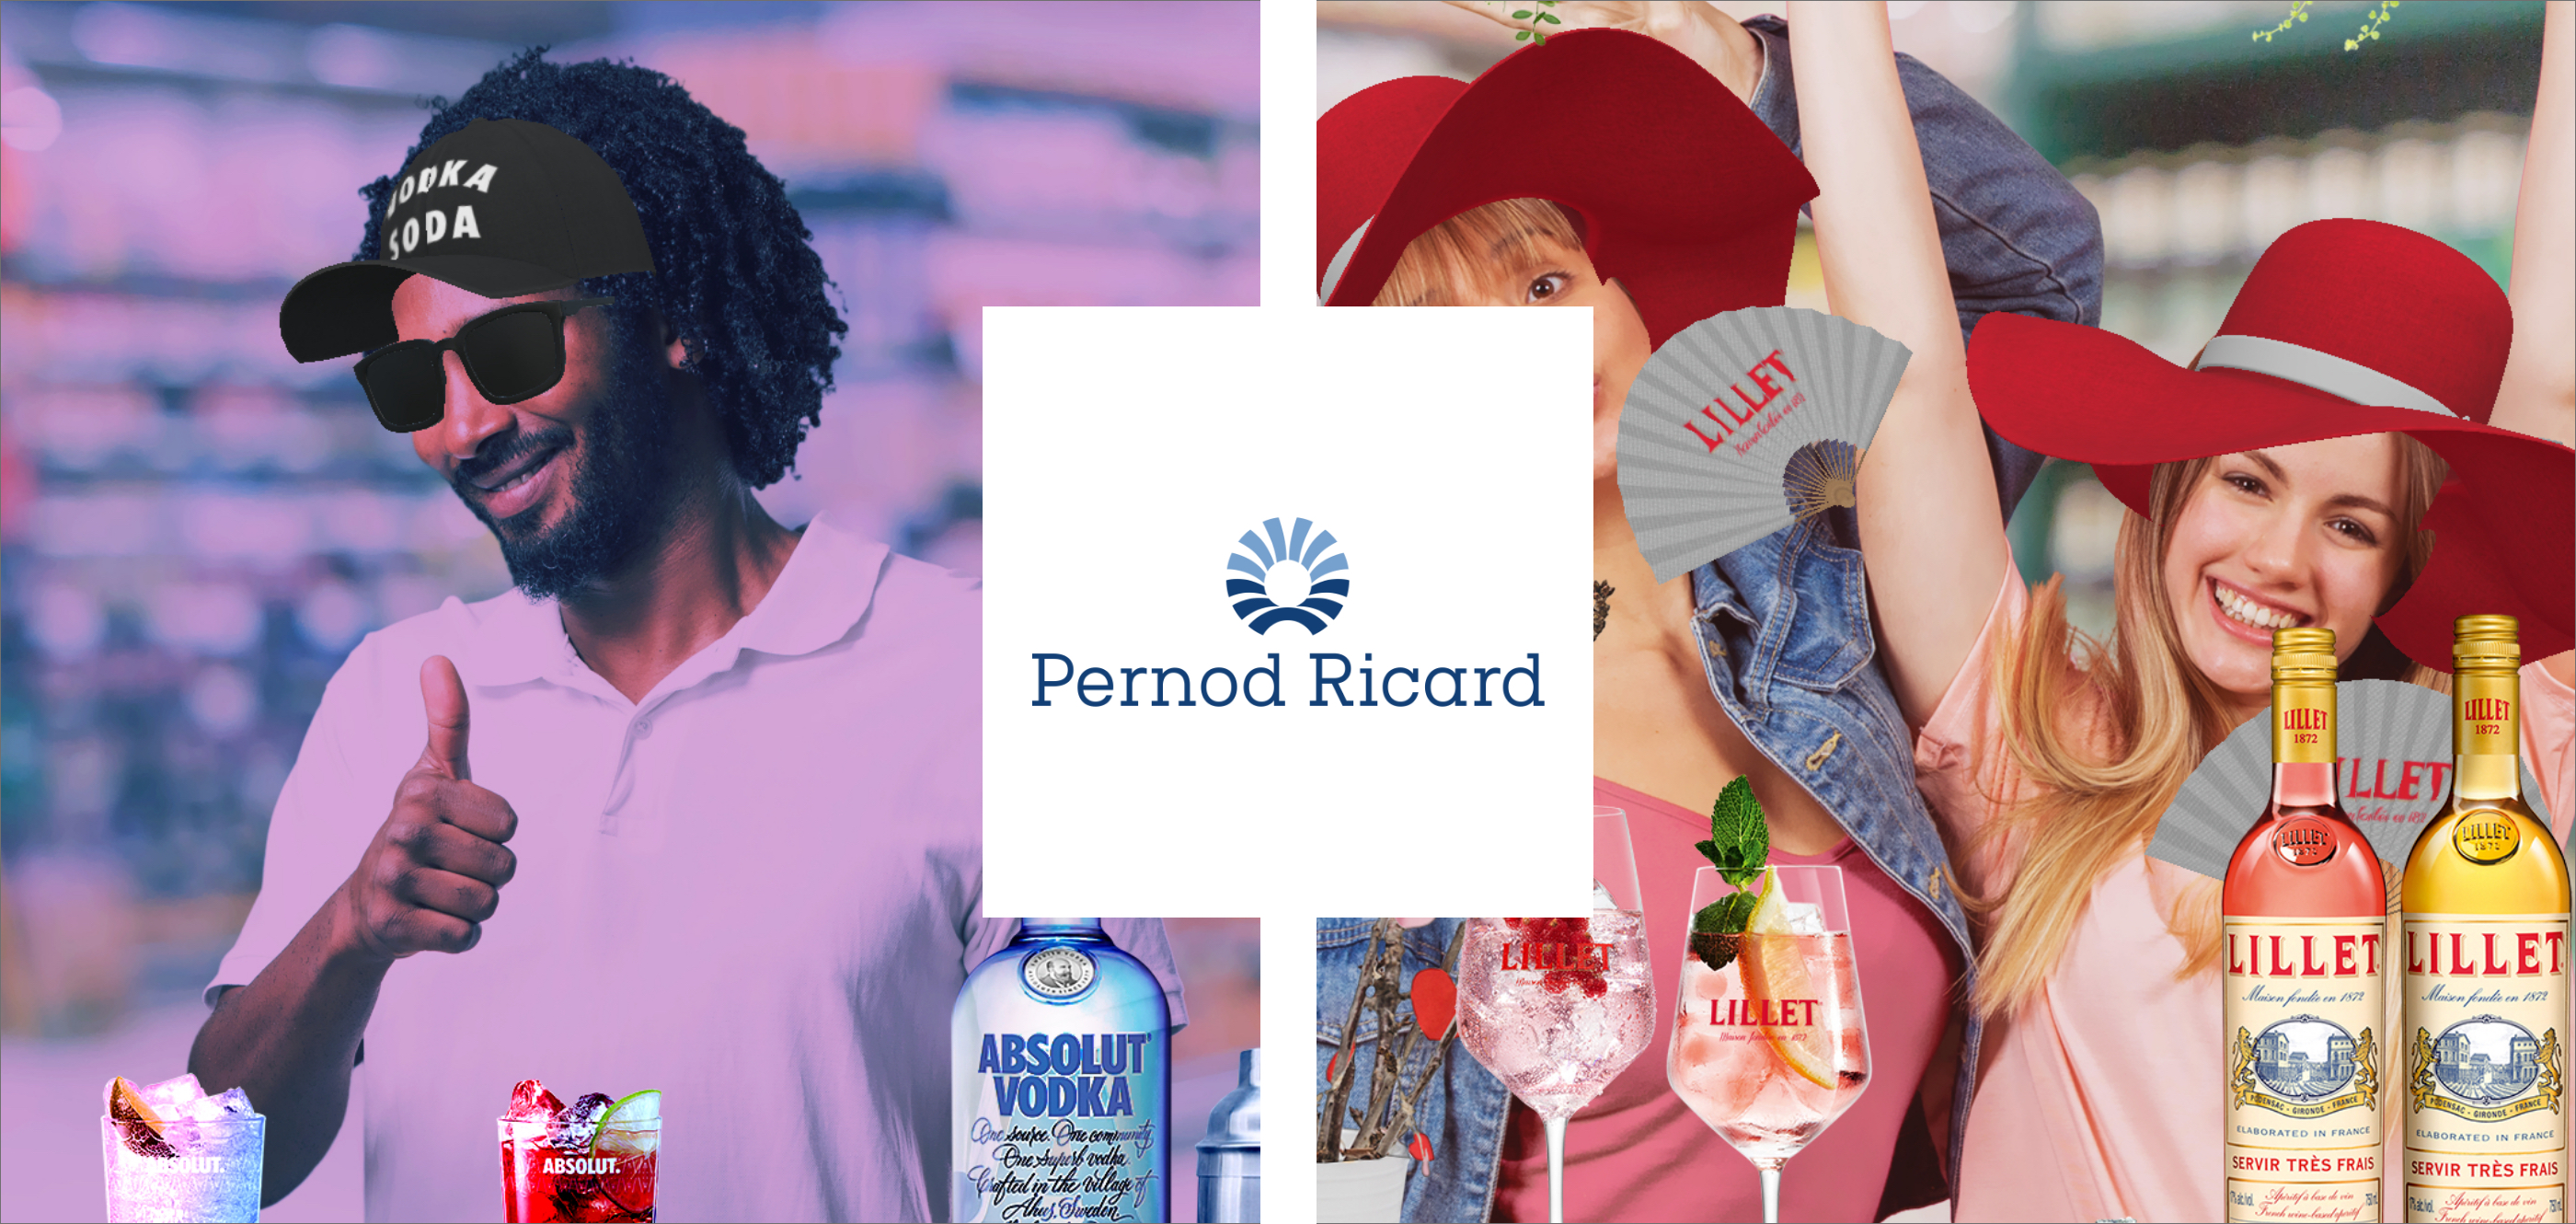 Interactive Ar worlds for Pernod Ricards promotion at the point of sale.